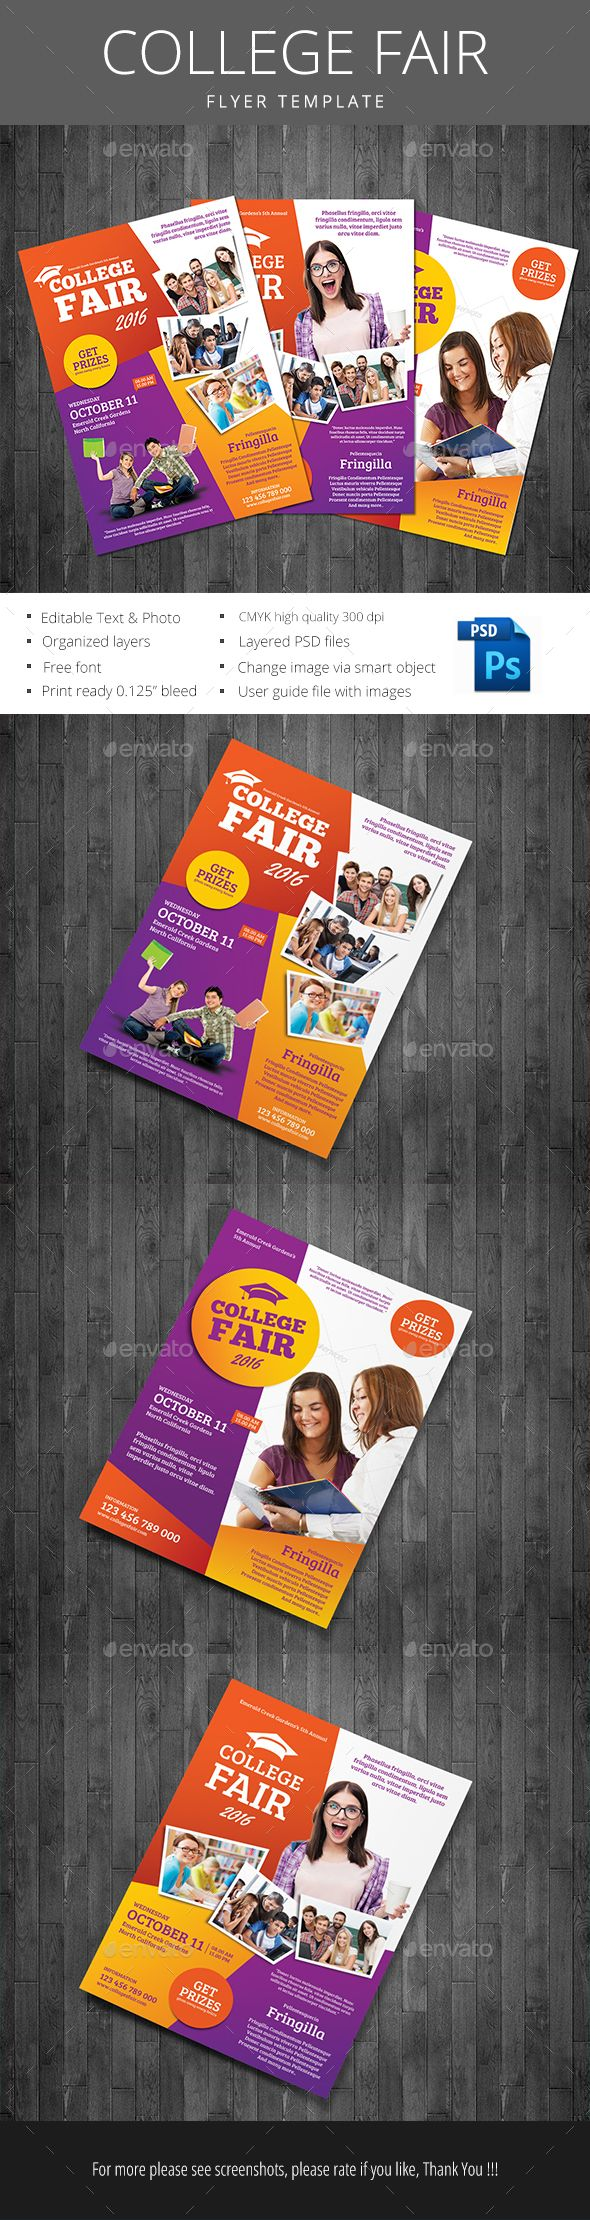 College Fair Flyer Template PSD. Download here: http://graphicriver.net/item/college-fair/15681210?ref=ksioks